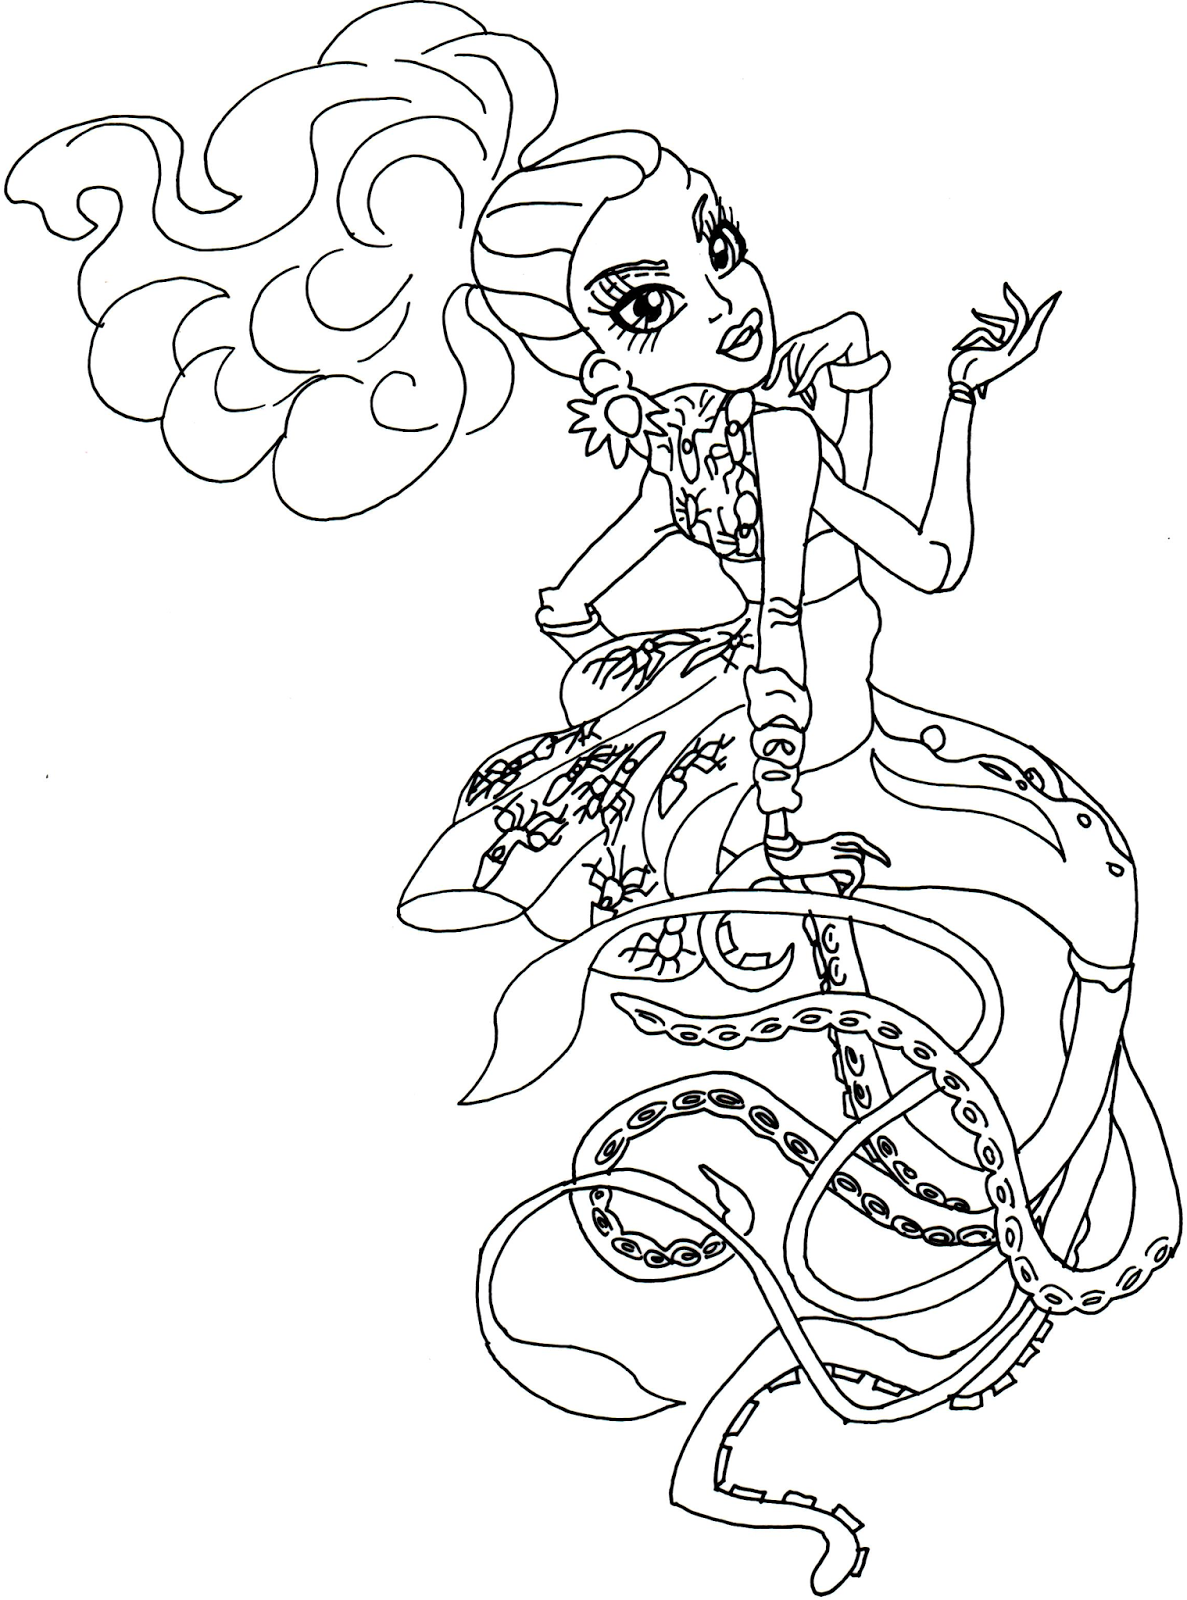 Free Printable Monster High Coloring Pages Kala Merri Monster